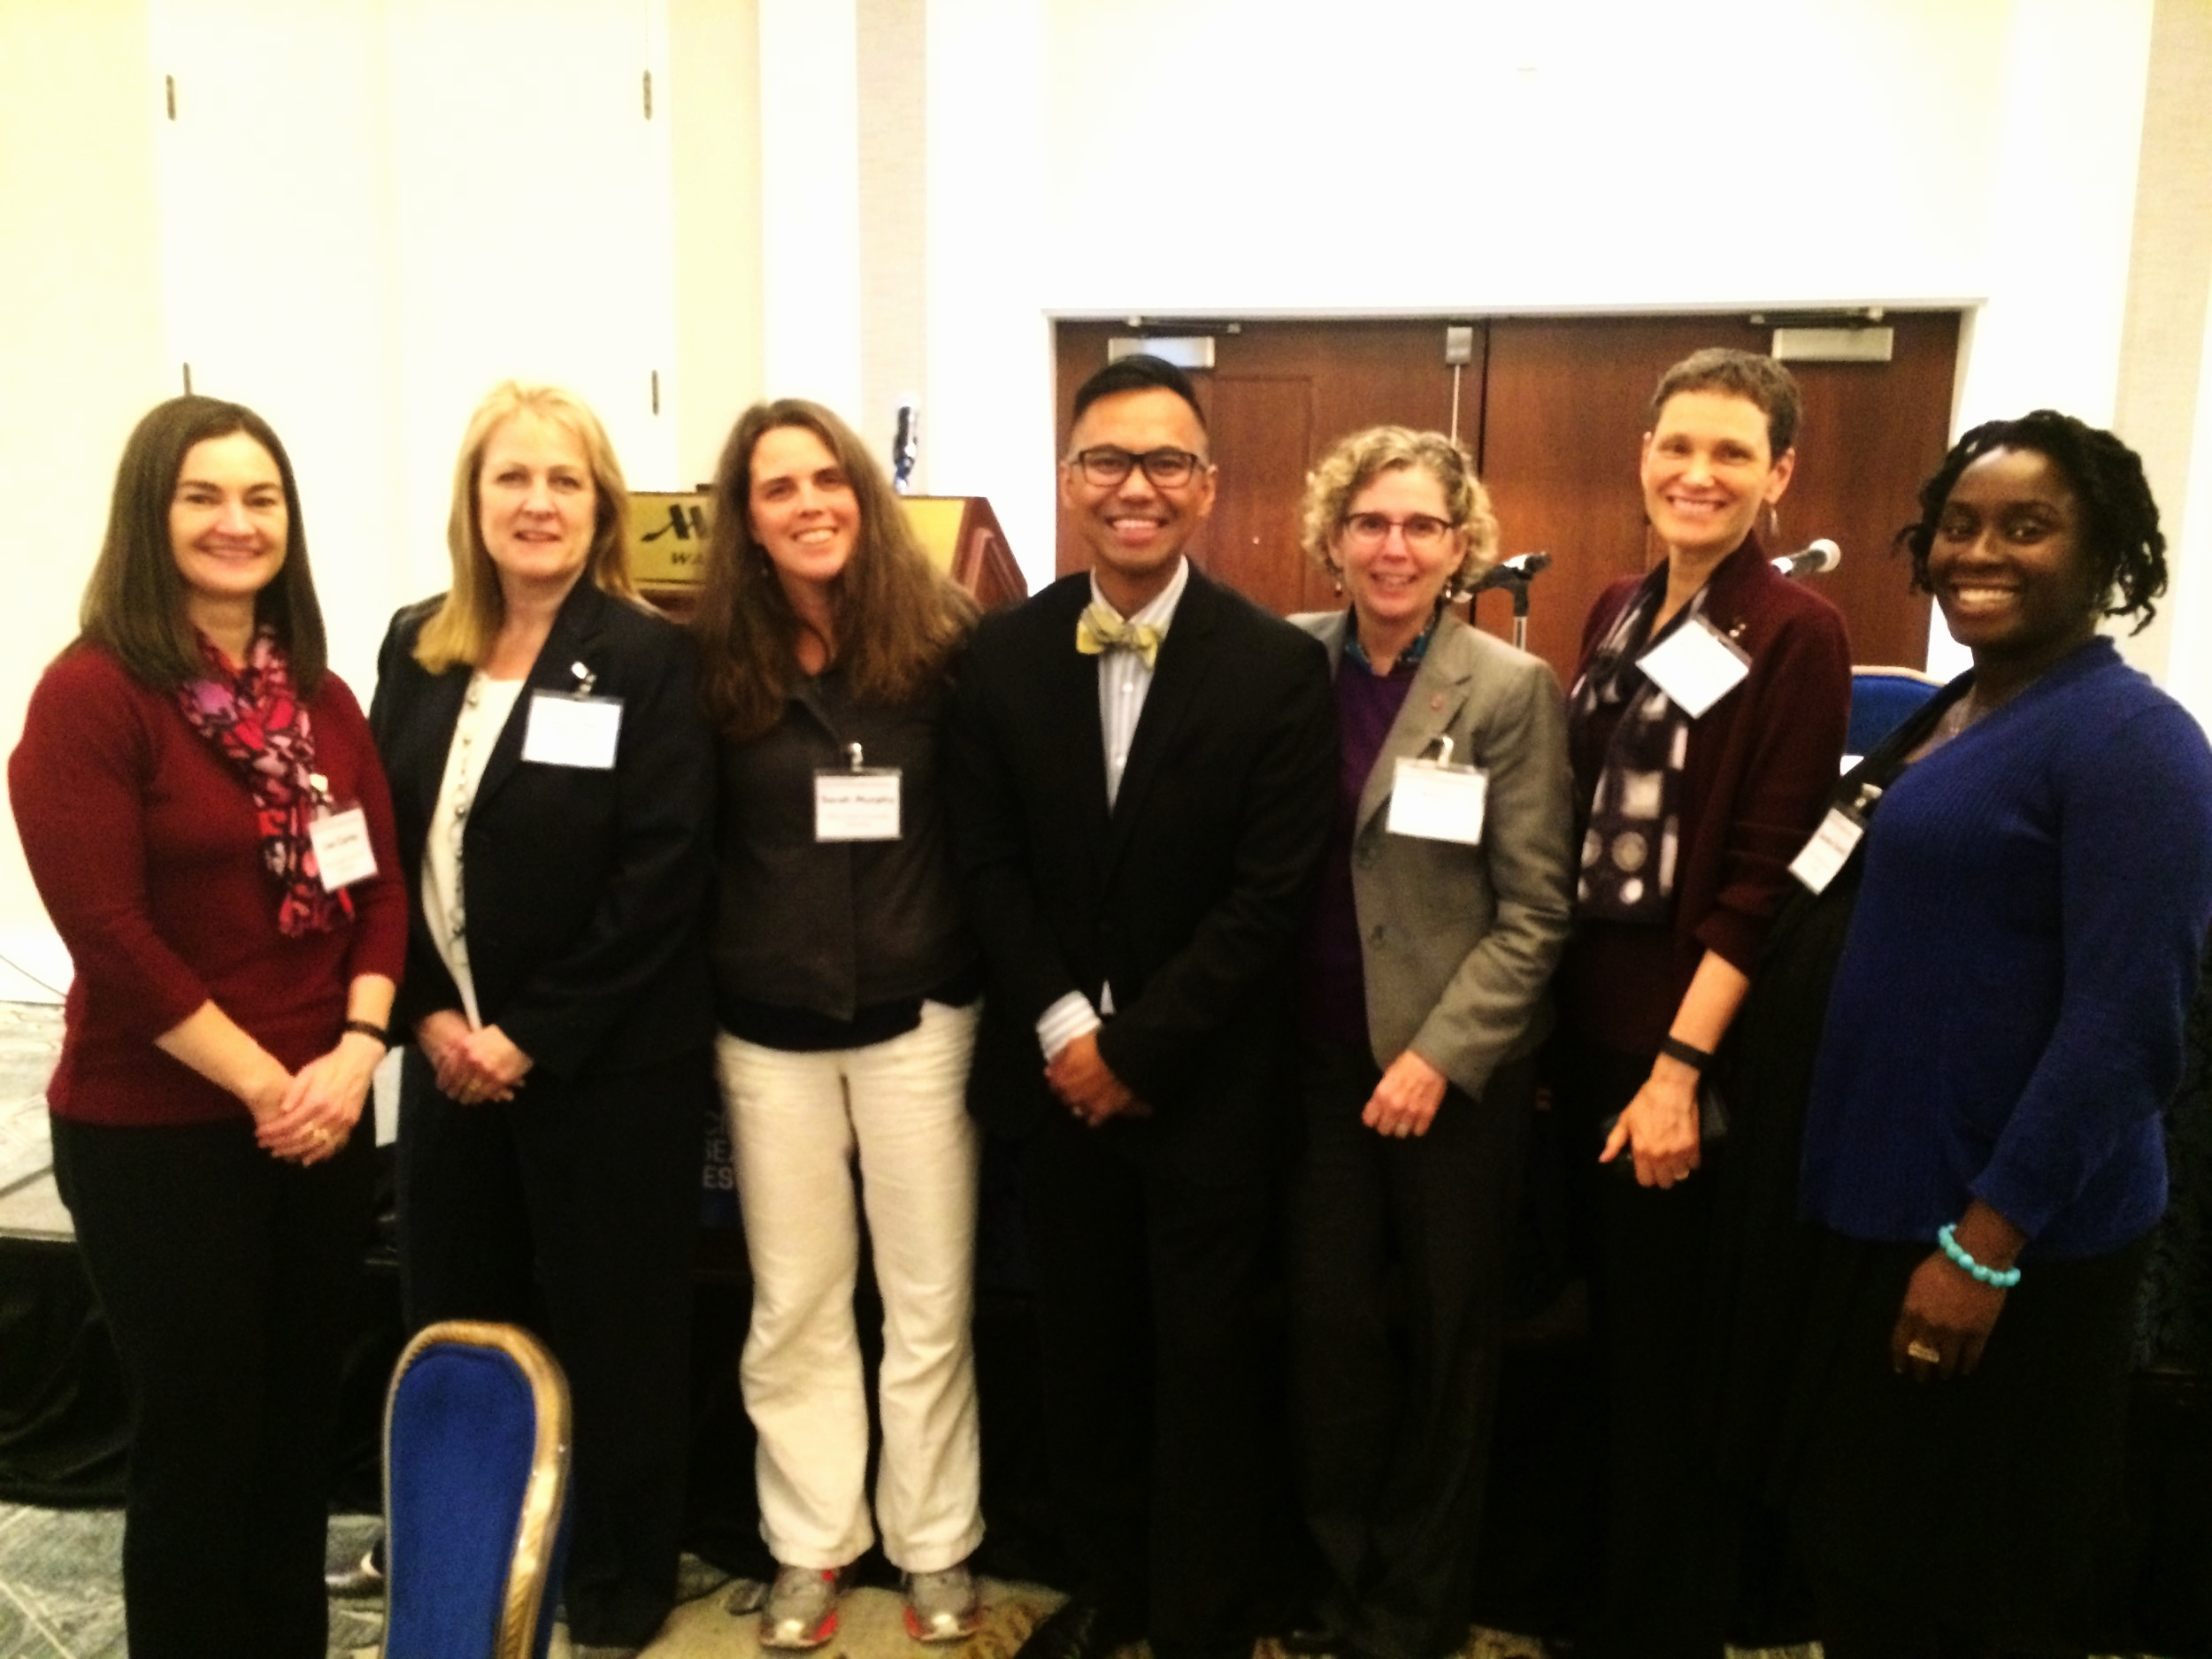 Much love from the delegation from Ohio State University Libraries